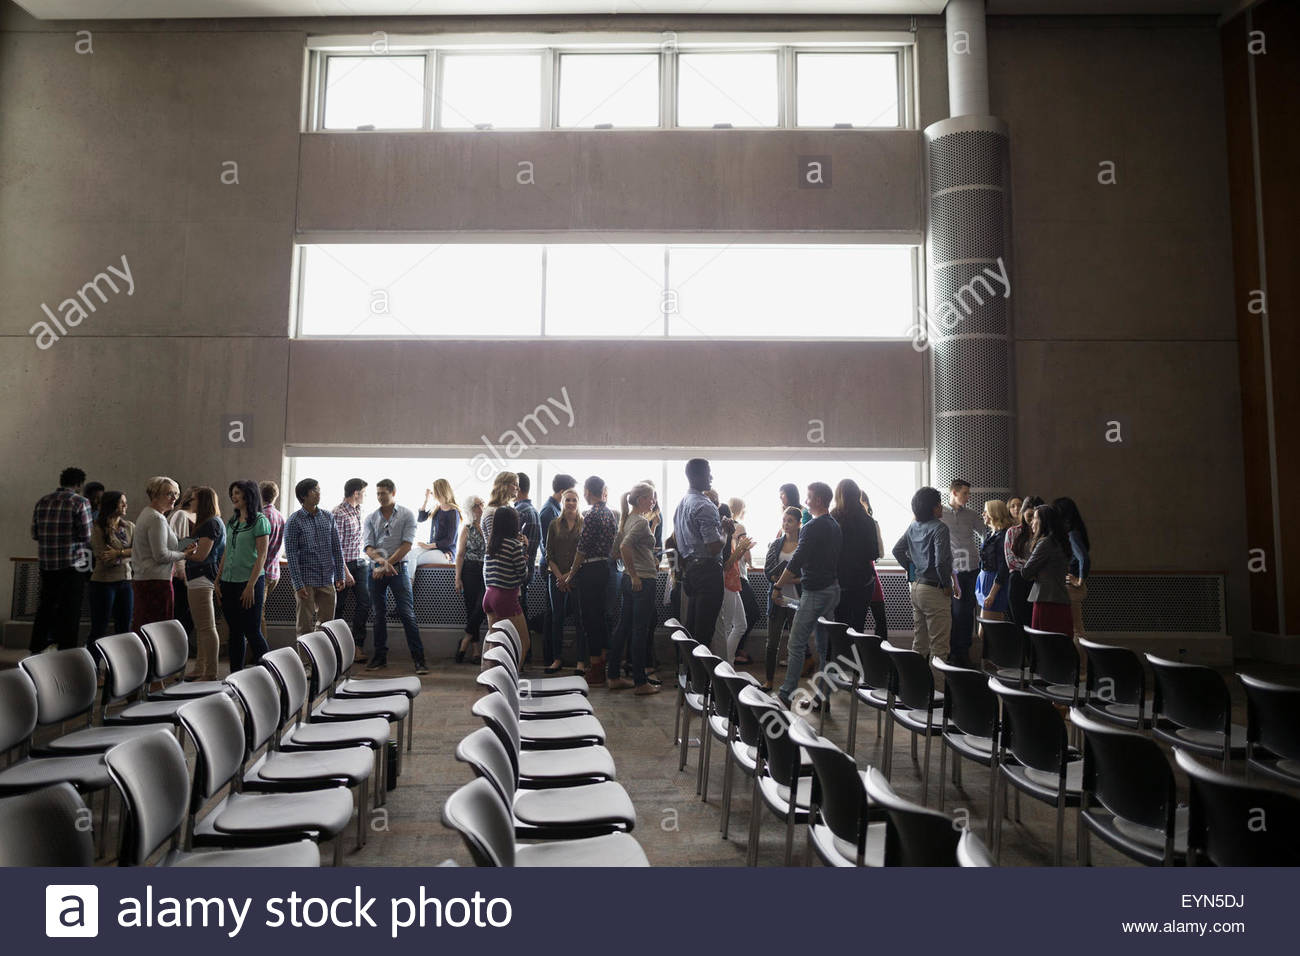 Le long de la socialisation des élèves dans l'auditorium de windows Photo Stock